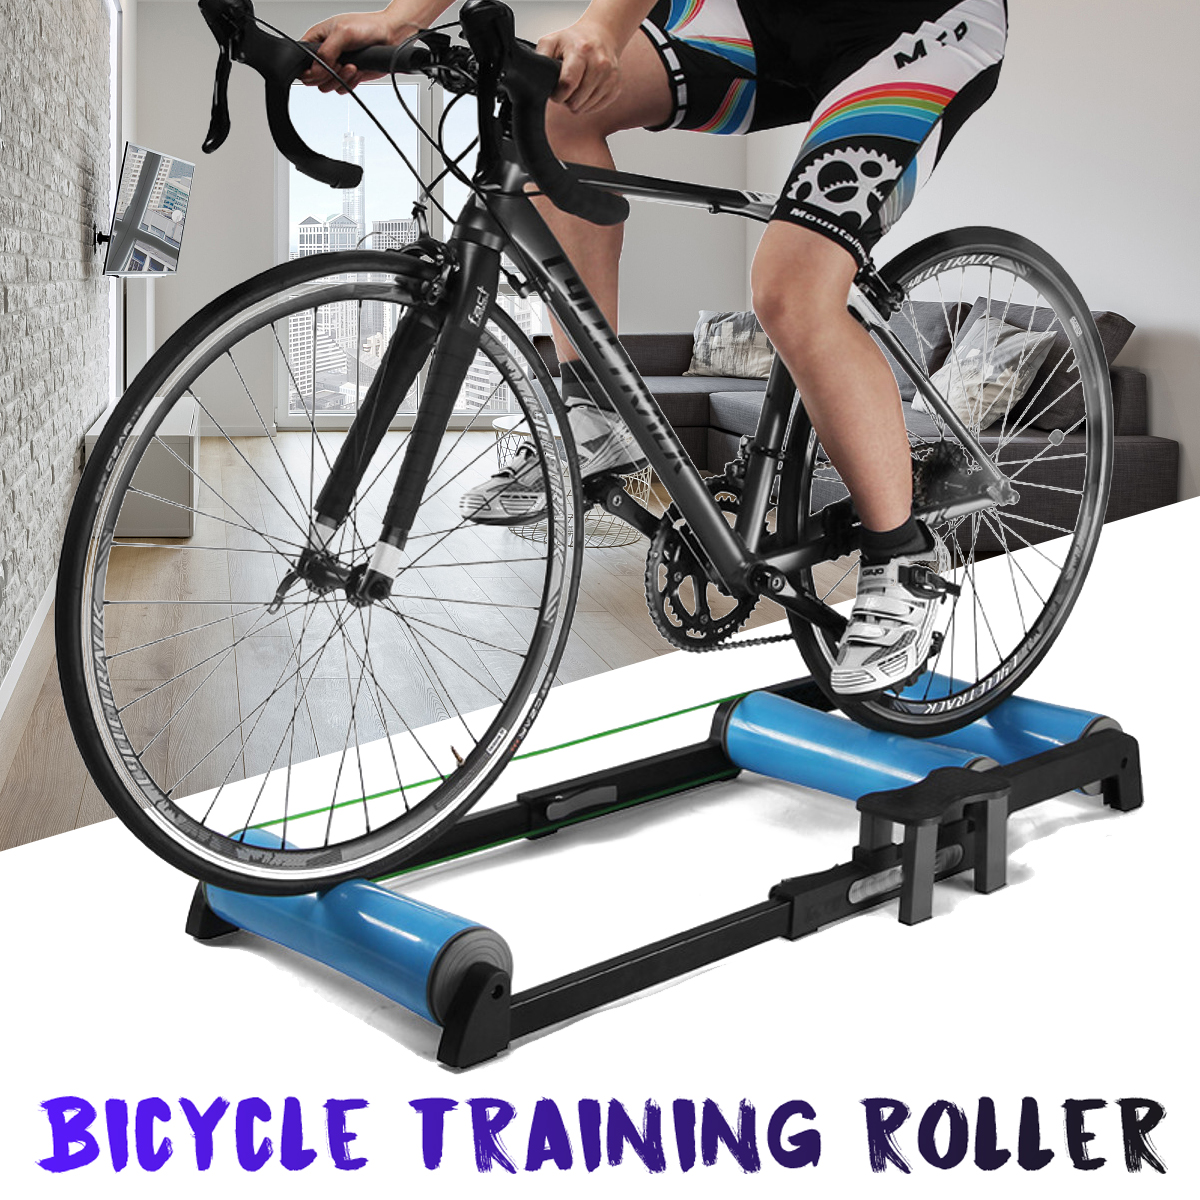 Bike Trainer Rollers Indoor Home Exercise Cycling Training Fitness Bicycle Trainer 24 25 26 28 29inchMTB 700C Road Bike Rollers